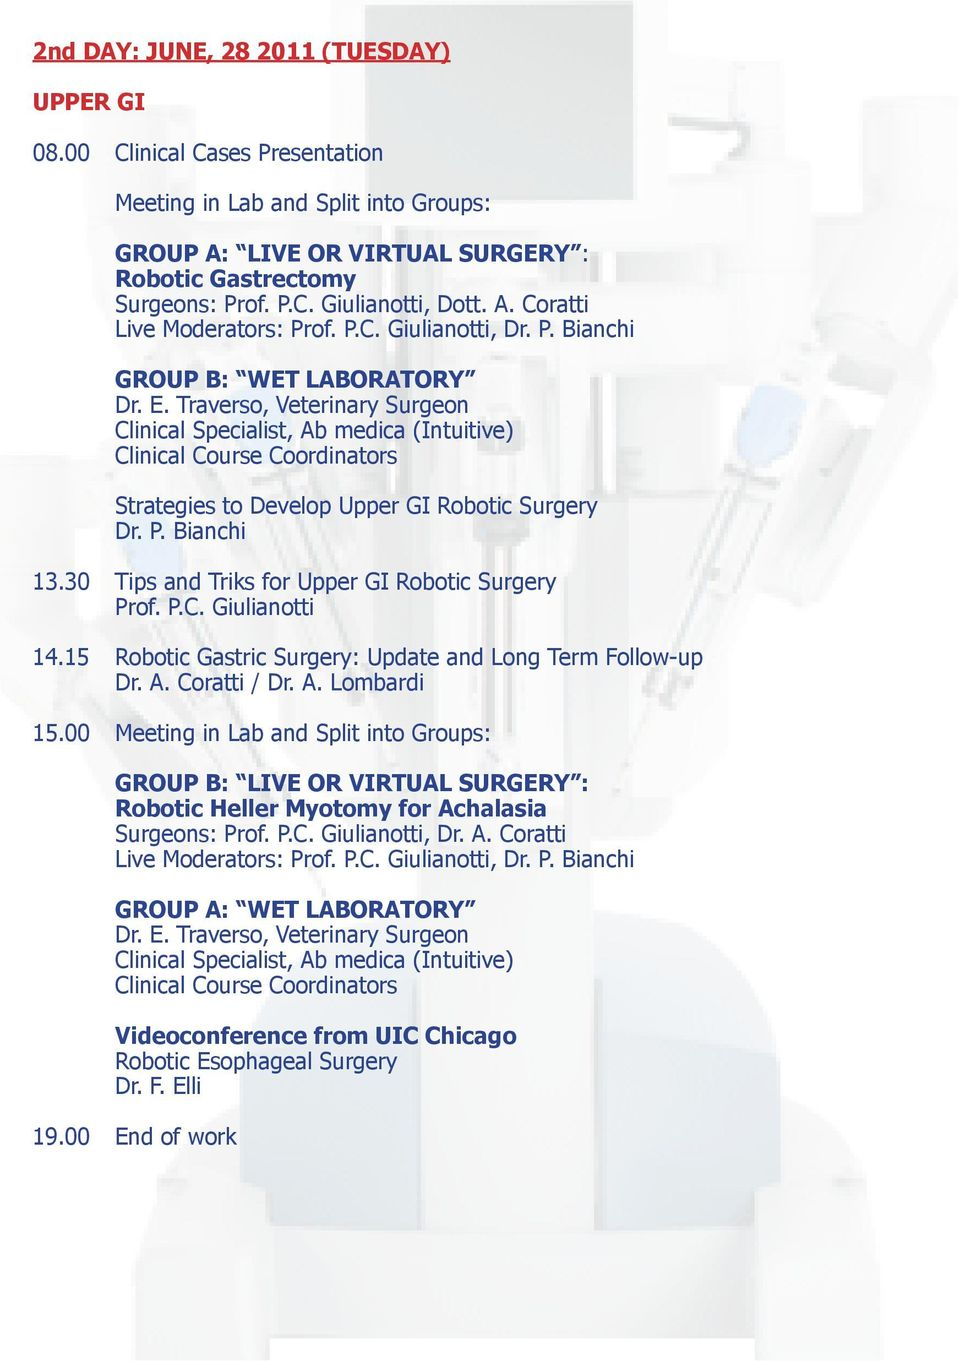 Bianchi 13.30 Tips and Triks for Upper GI Robotic Surgery 14.15 Robotic Gastric Surgery: Update and Long Term Follow-up Dr. A. Coratti / Dr. A. Lombardi 15.